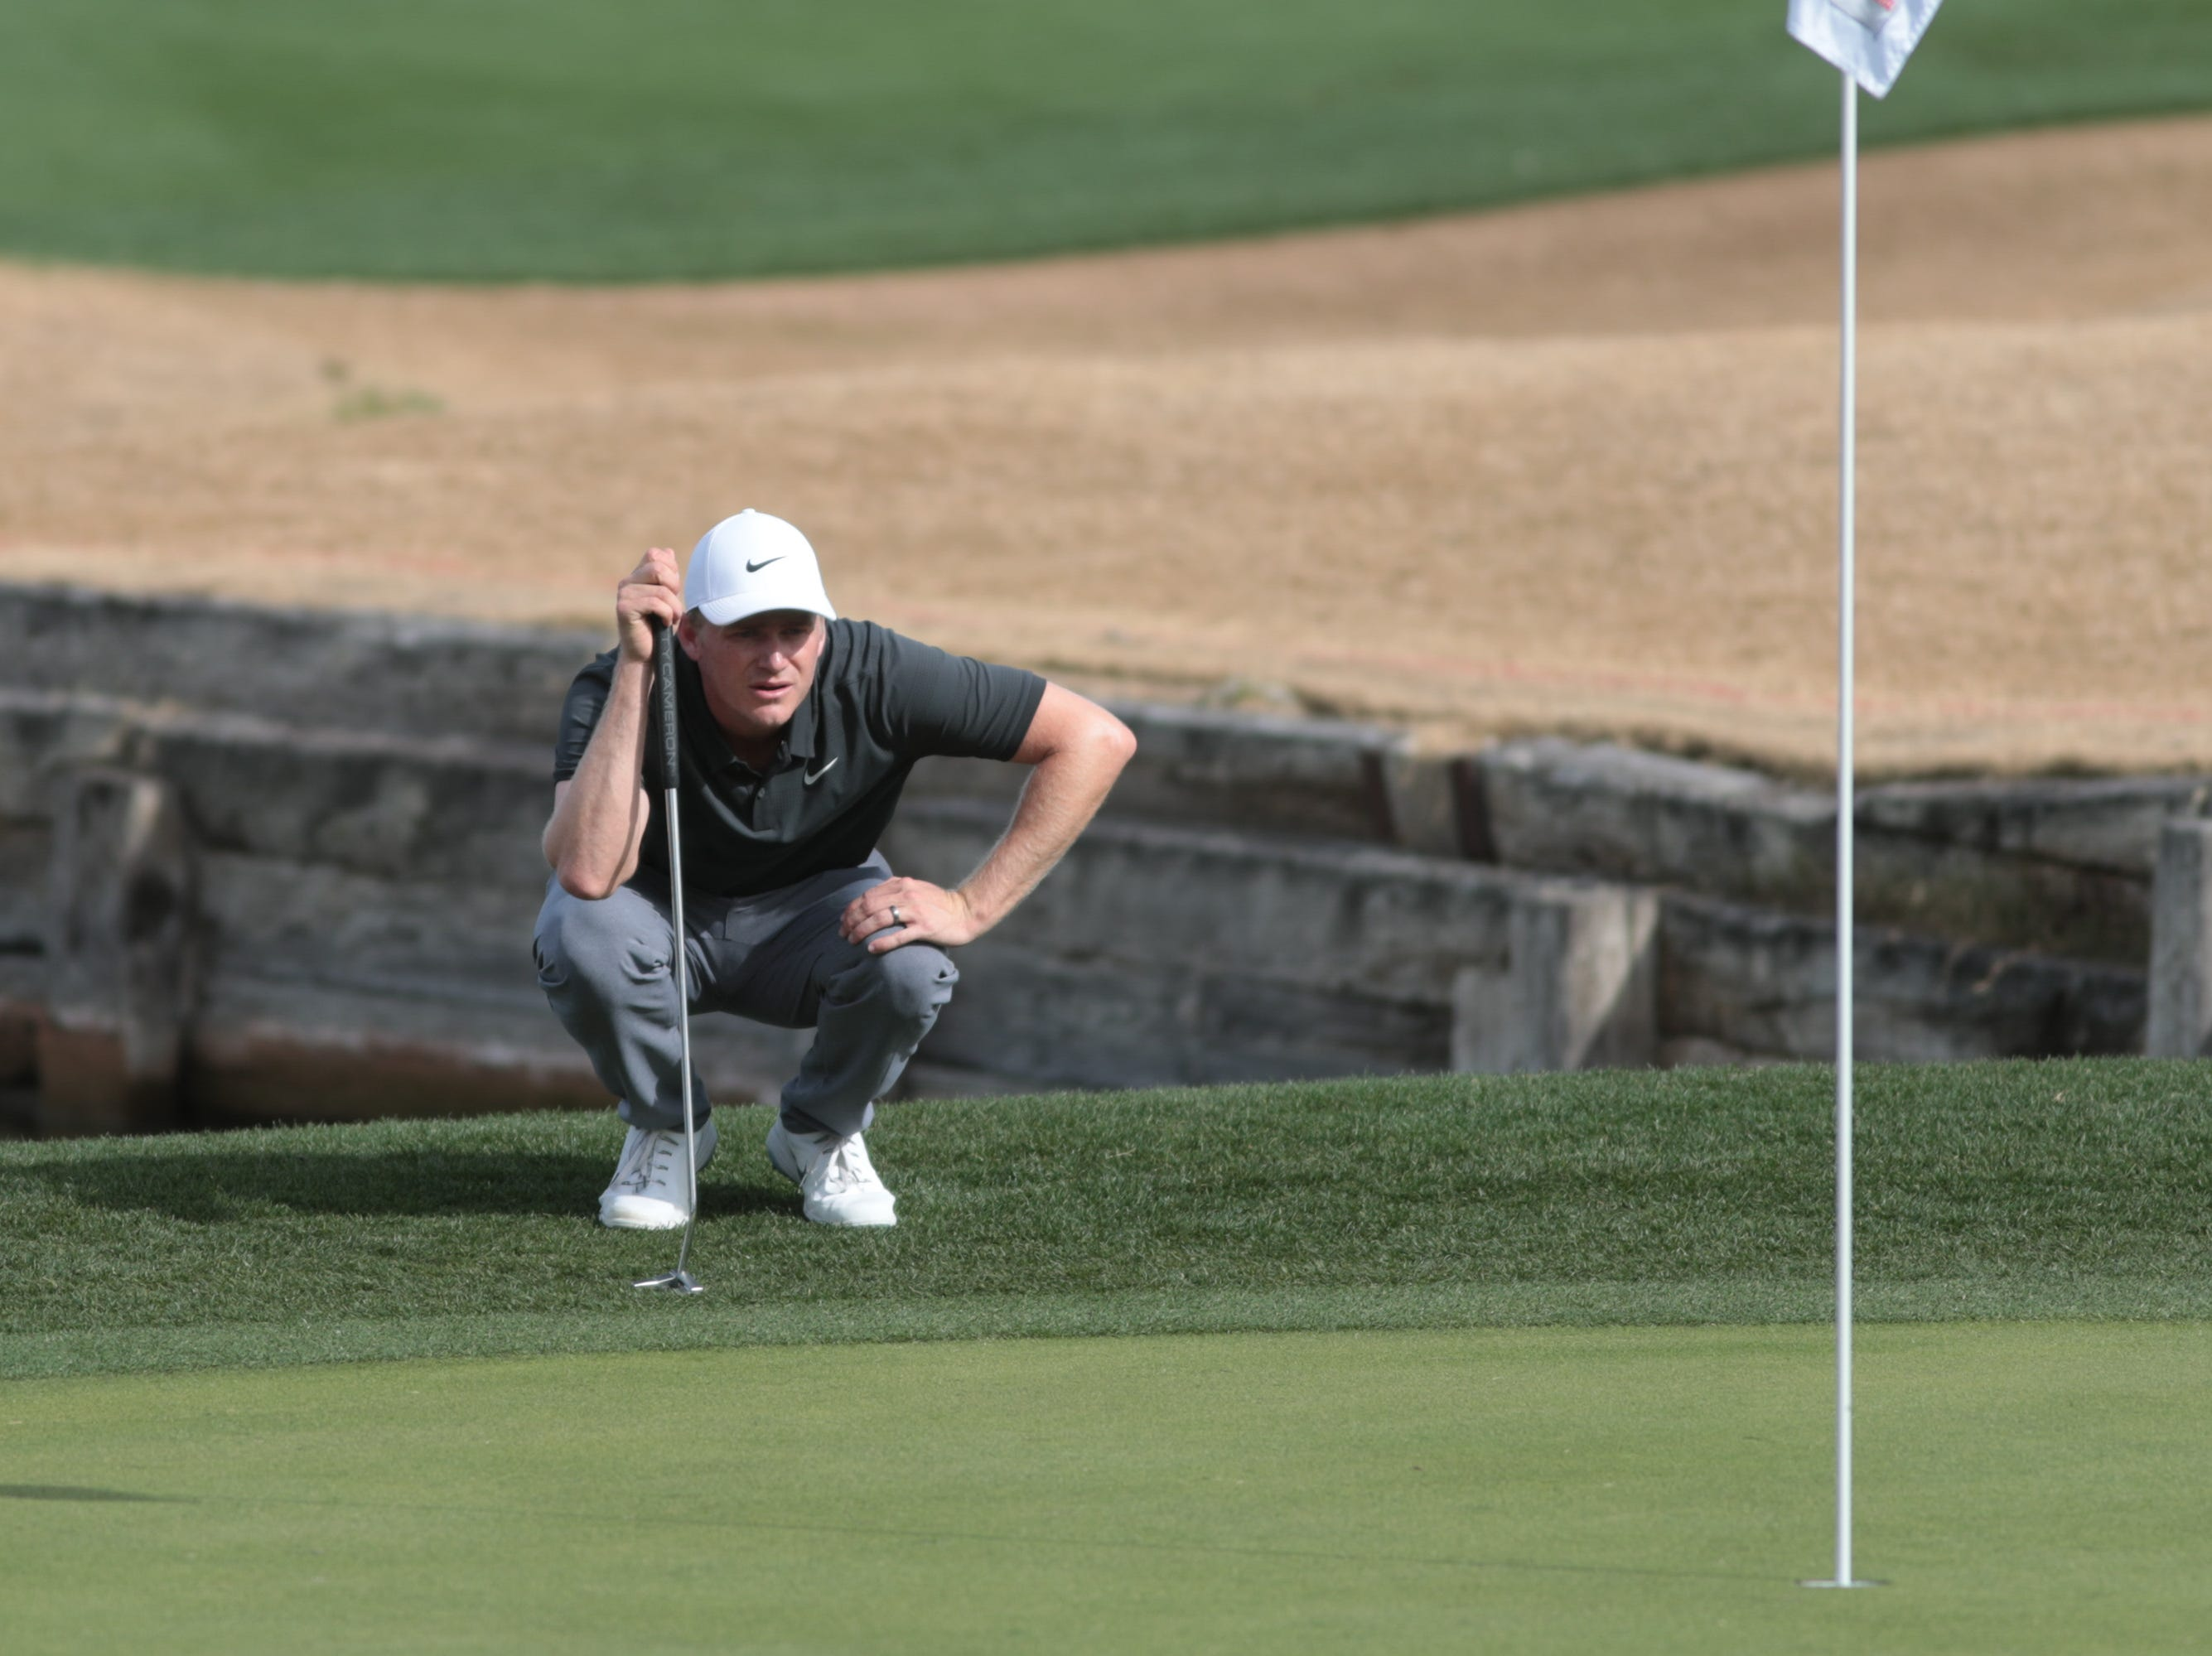 Adam Long putts on the 7th hole of the 2019 Desert Classic, Sunday, January 20, 2019.